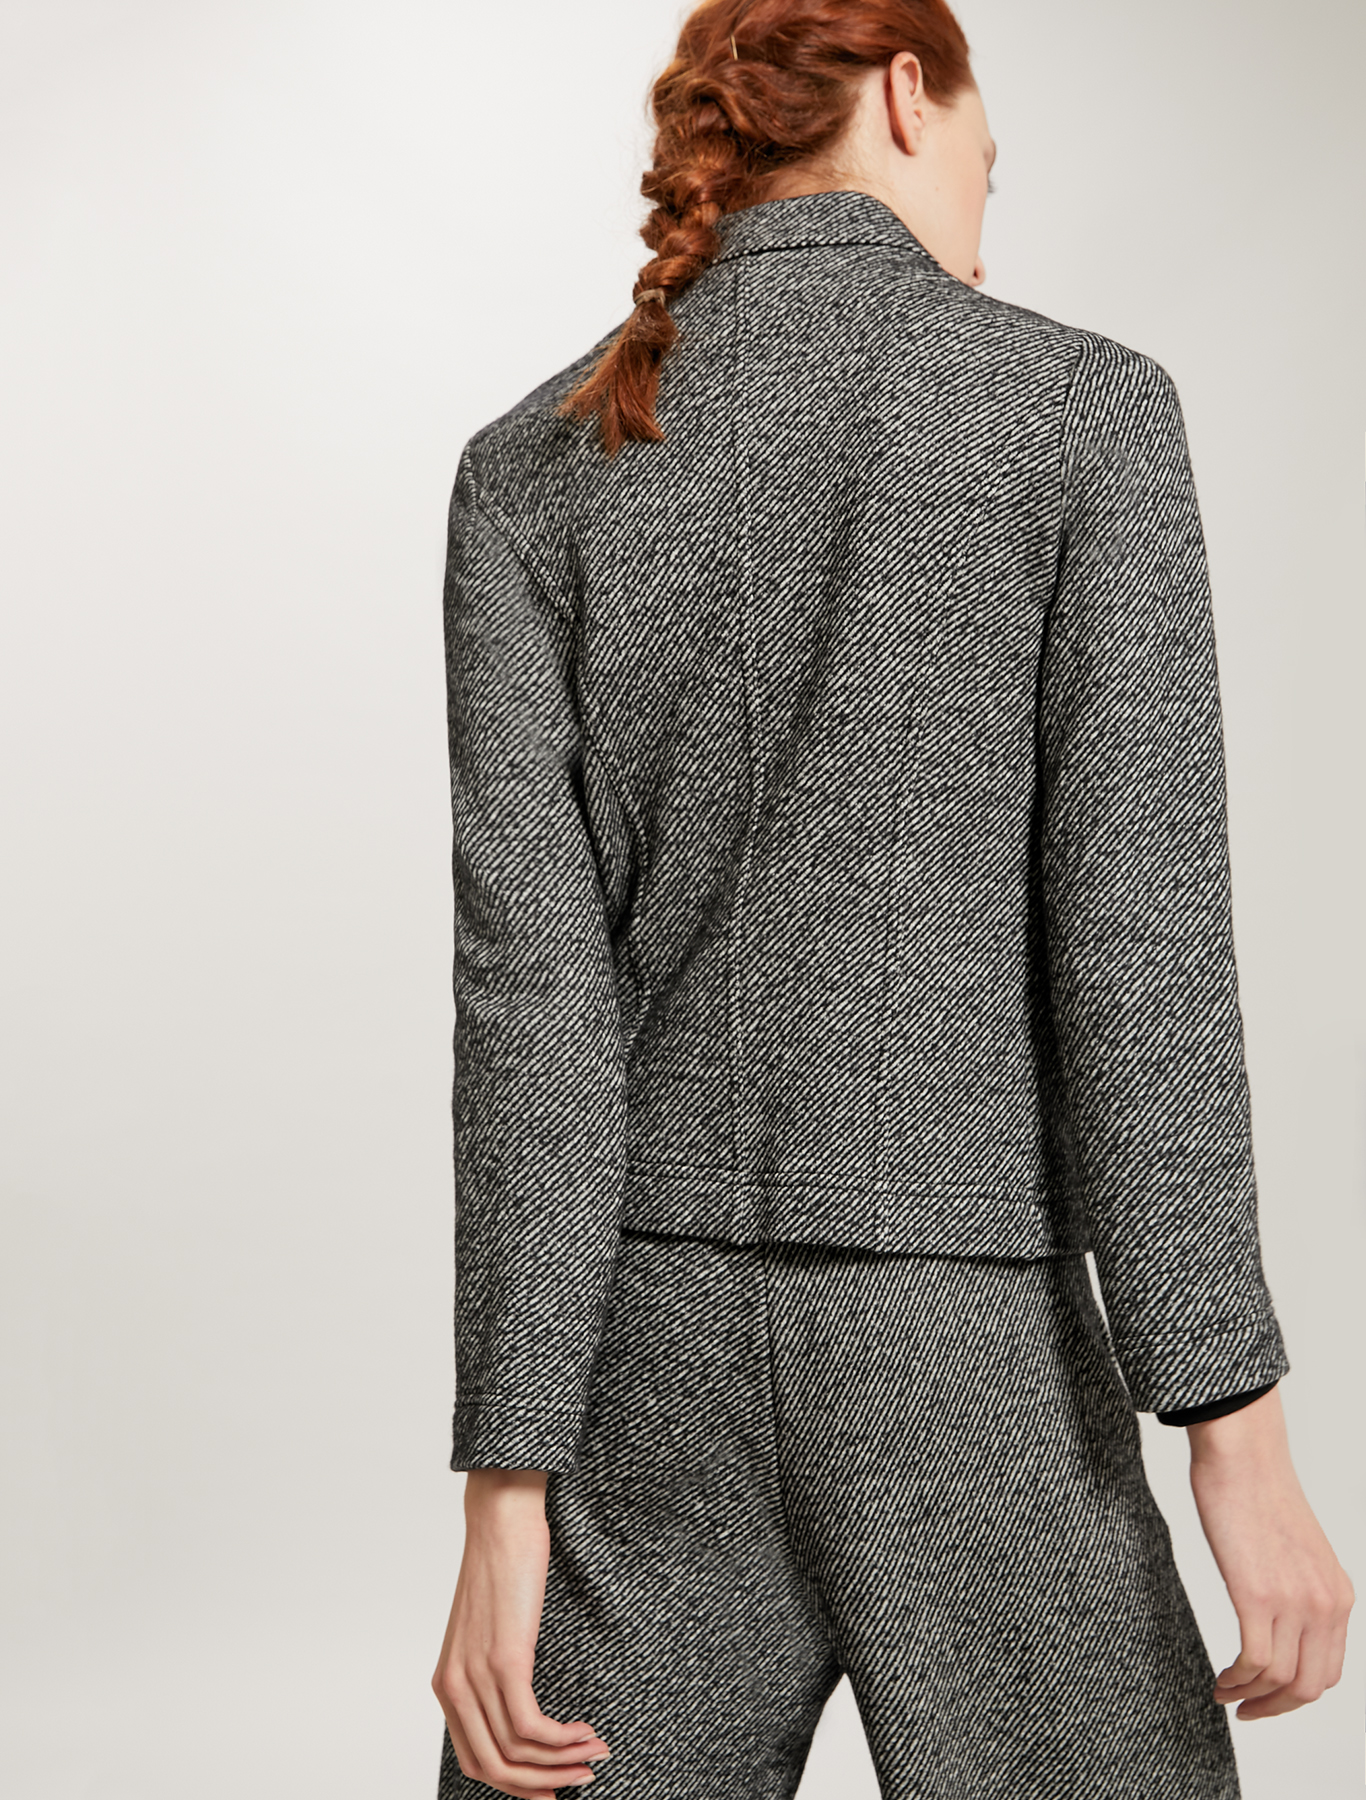 Zipped tweed jersey jacket - black pattern - pennyblack